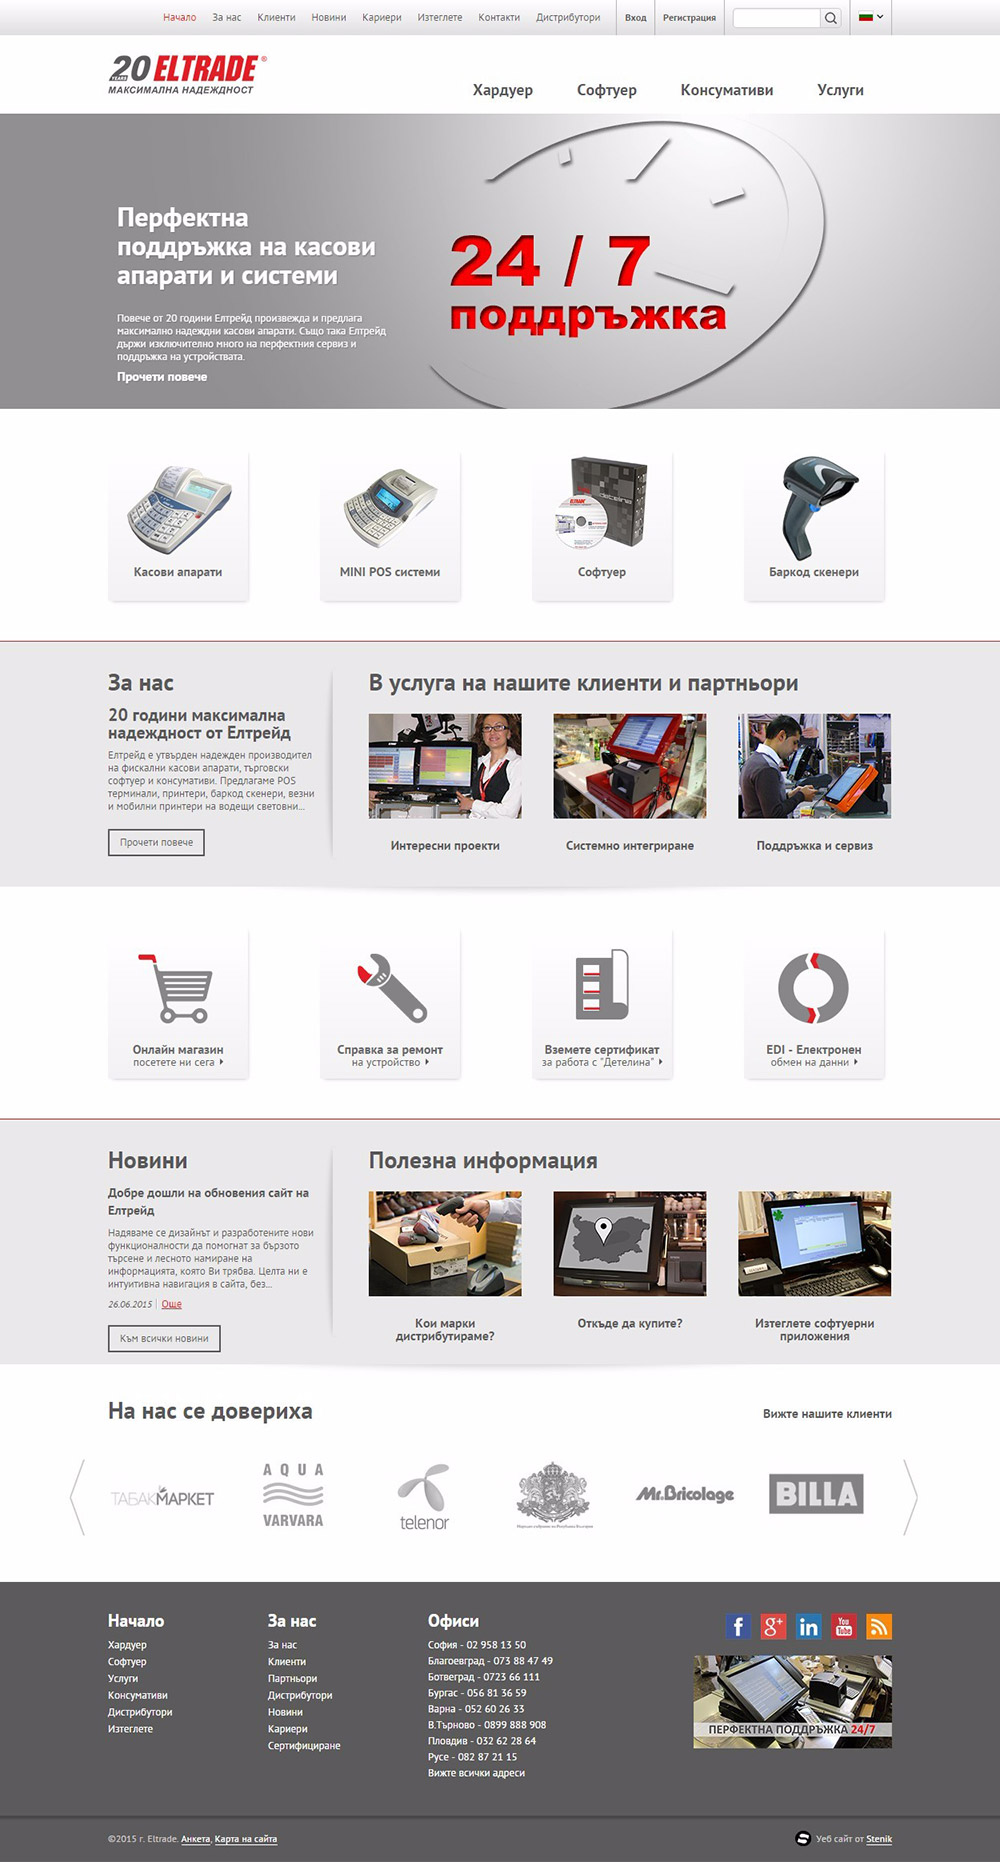 Corporate website for Eltrade, Eltrade - Web Sites, Stenik, StenikCMS